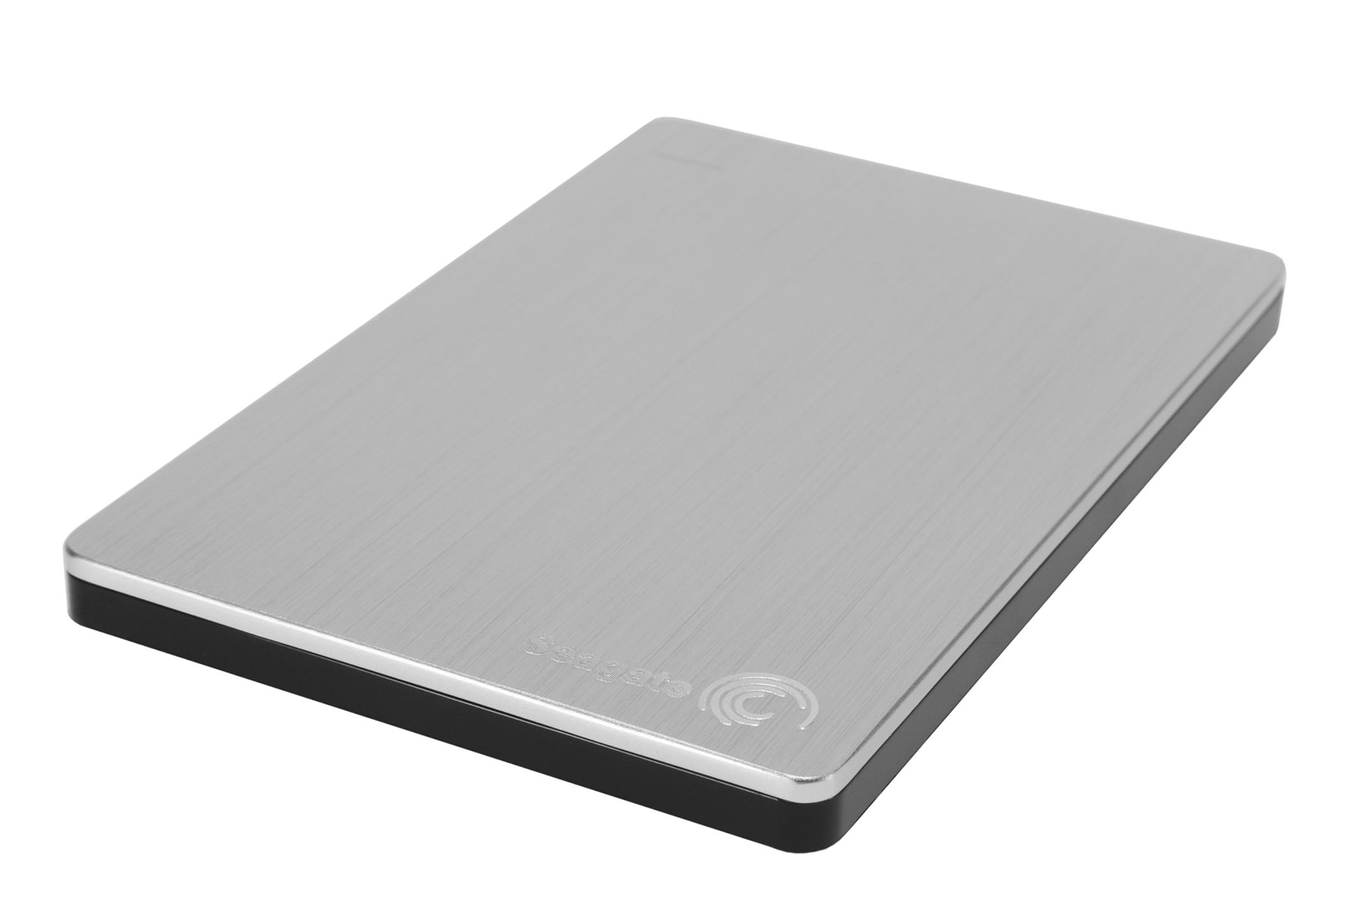 disque dur externe seagate 2 5 500 go slim portable usb 3 0 silver slim portable 1383540. Black Bedroom Furniture Sets. Home Design Ideas